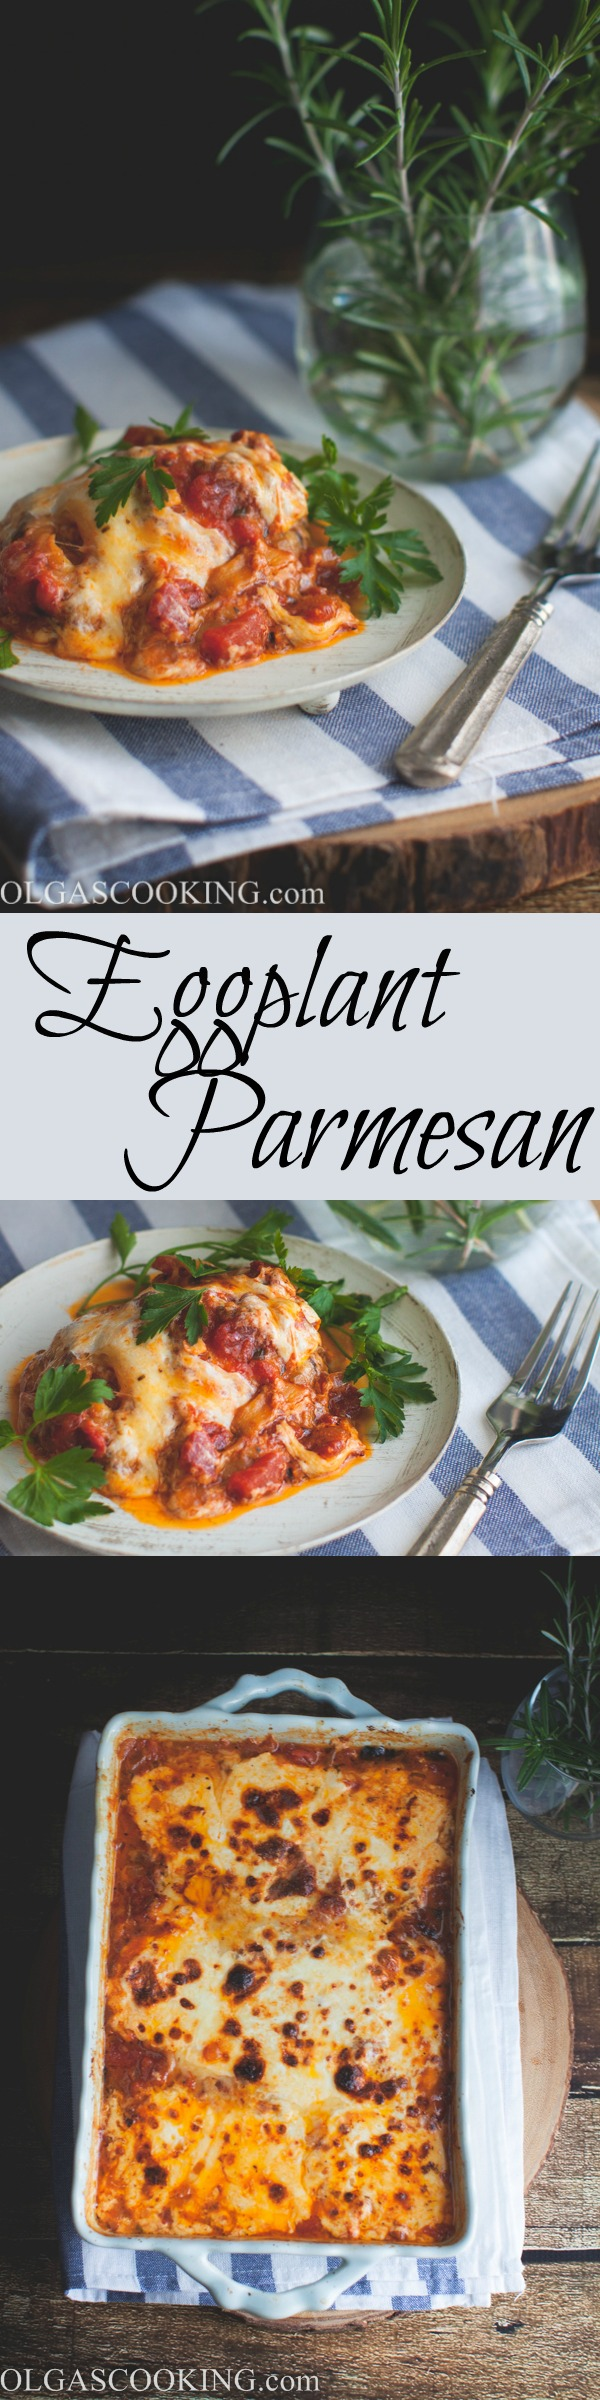 Best ever Eggplant Parmesan recipe!